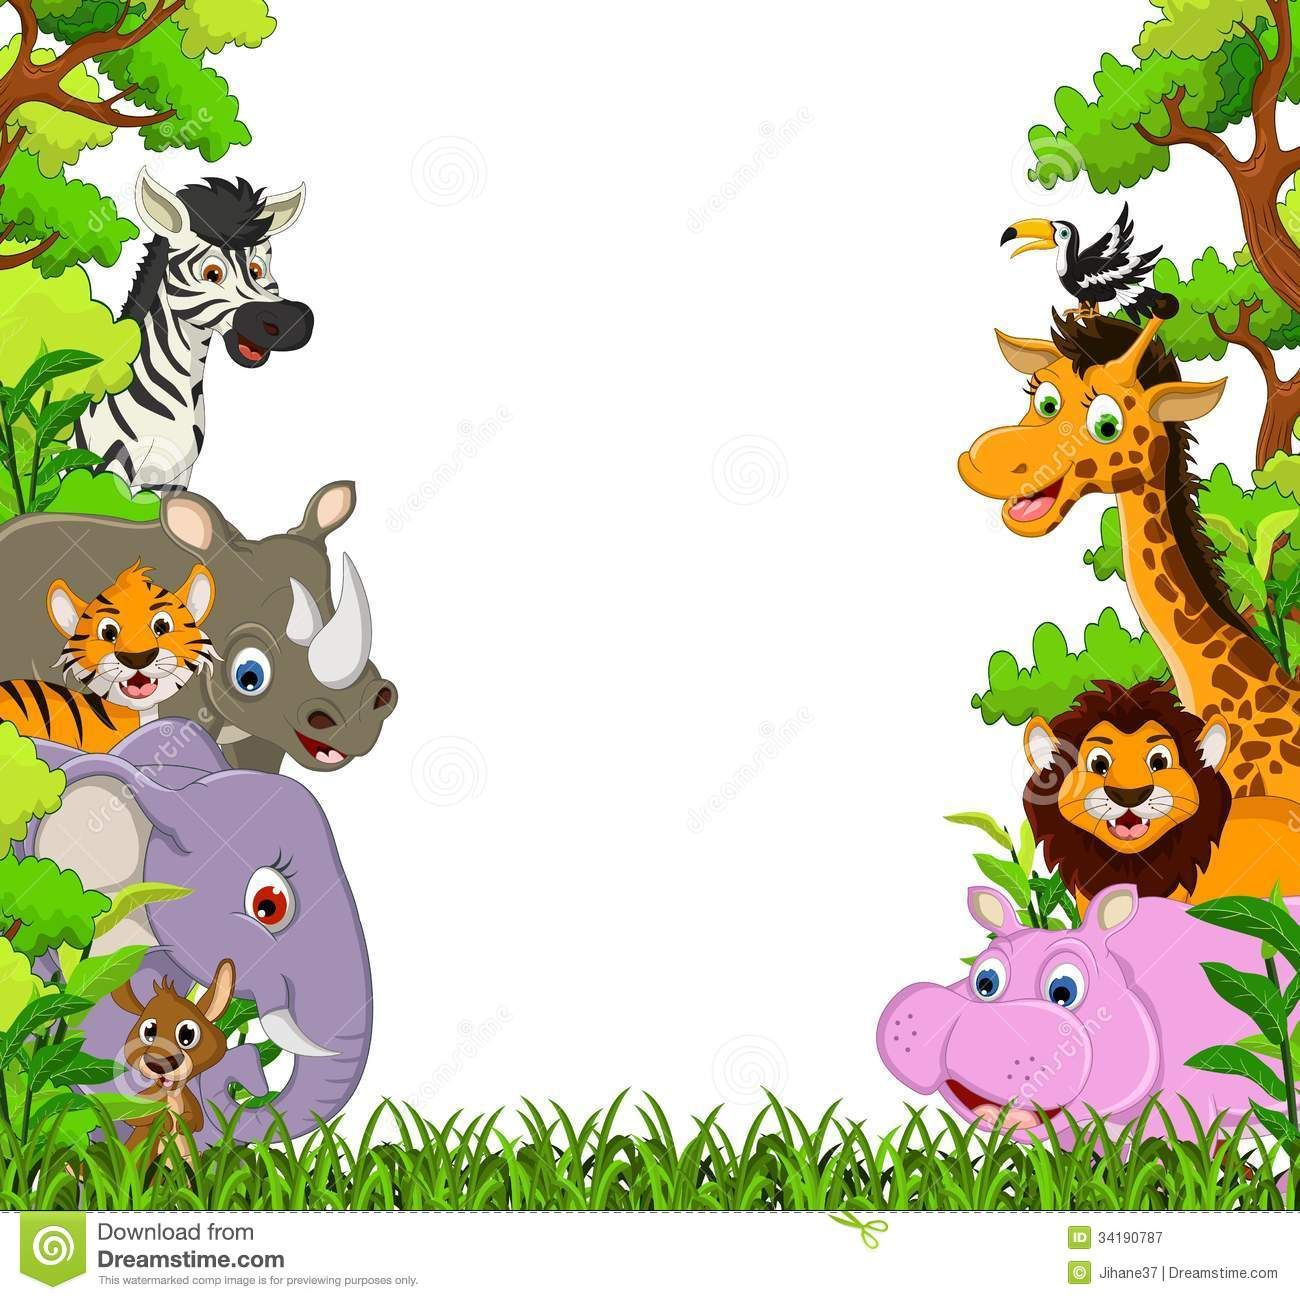 Image for Free Jungle Animal Clipart Cartoon Images Cute Animal   safari  Jungle cartoon